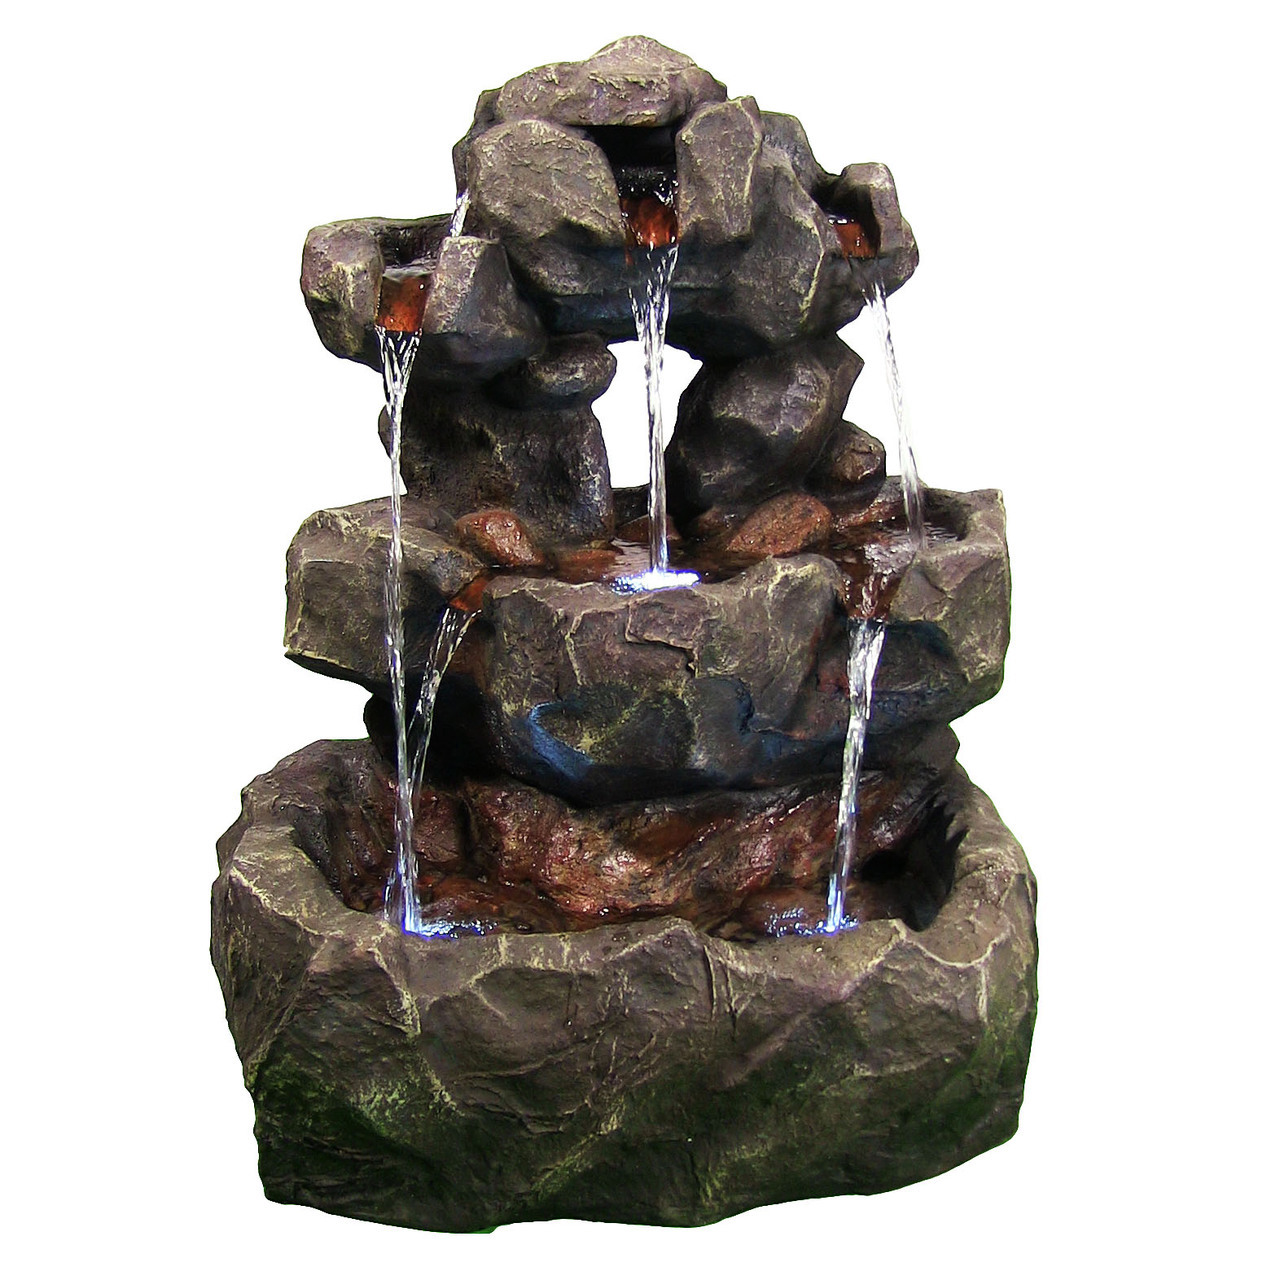 Sunnydaze Layered Rock Waterfall Outdoor Fountain with LED Lights, 32 Inch Tall, 819804016236